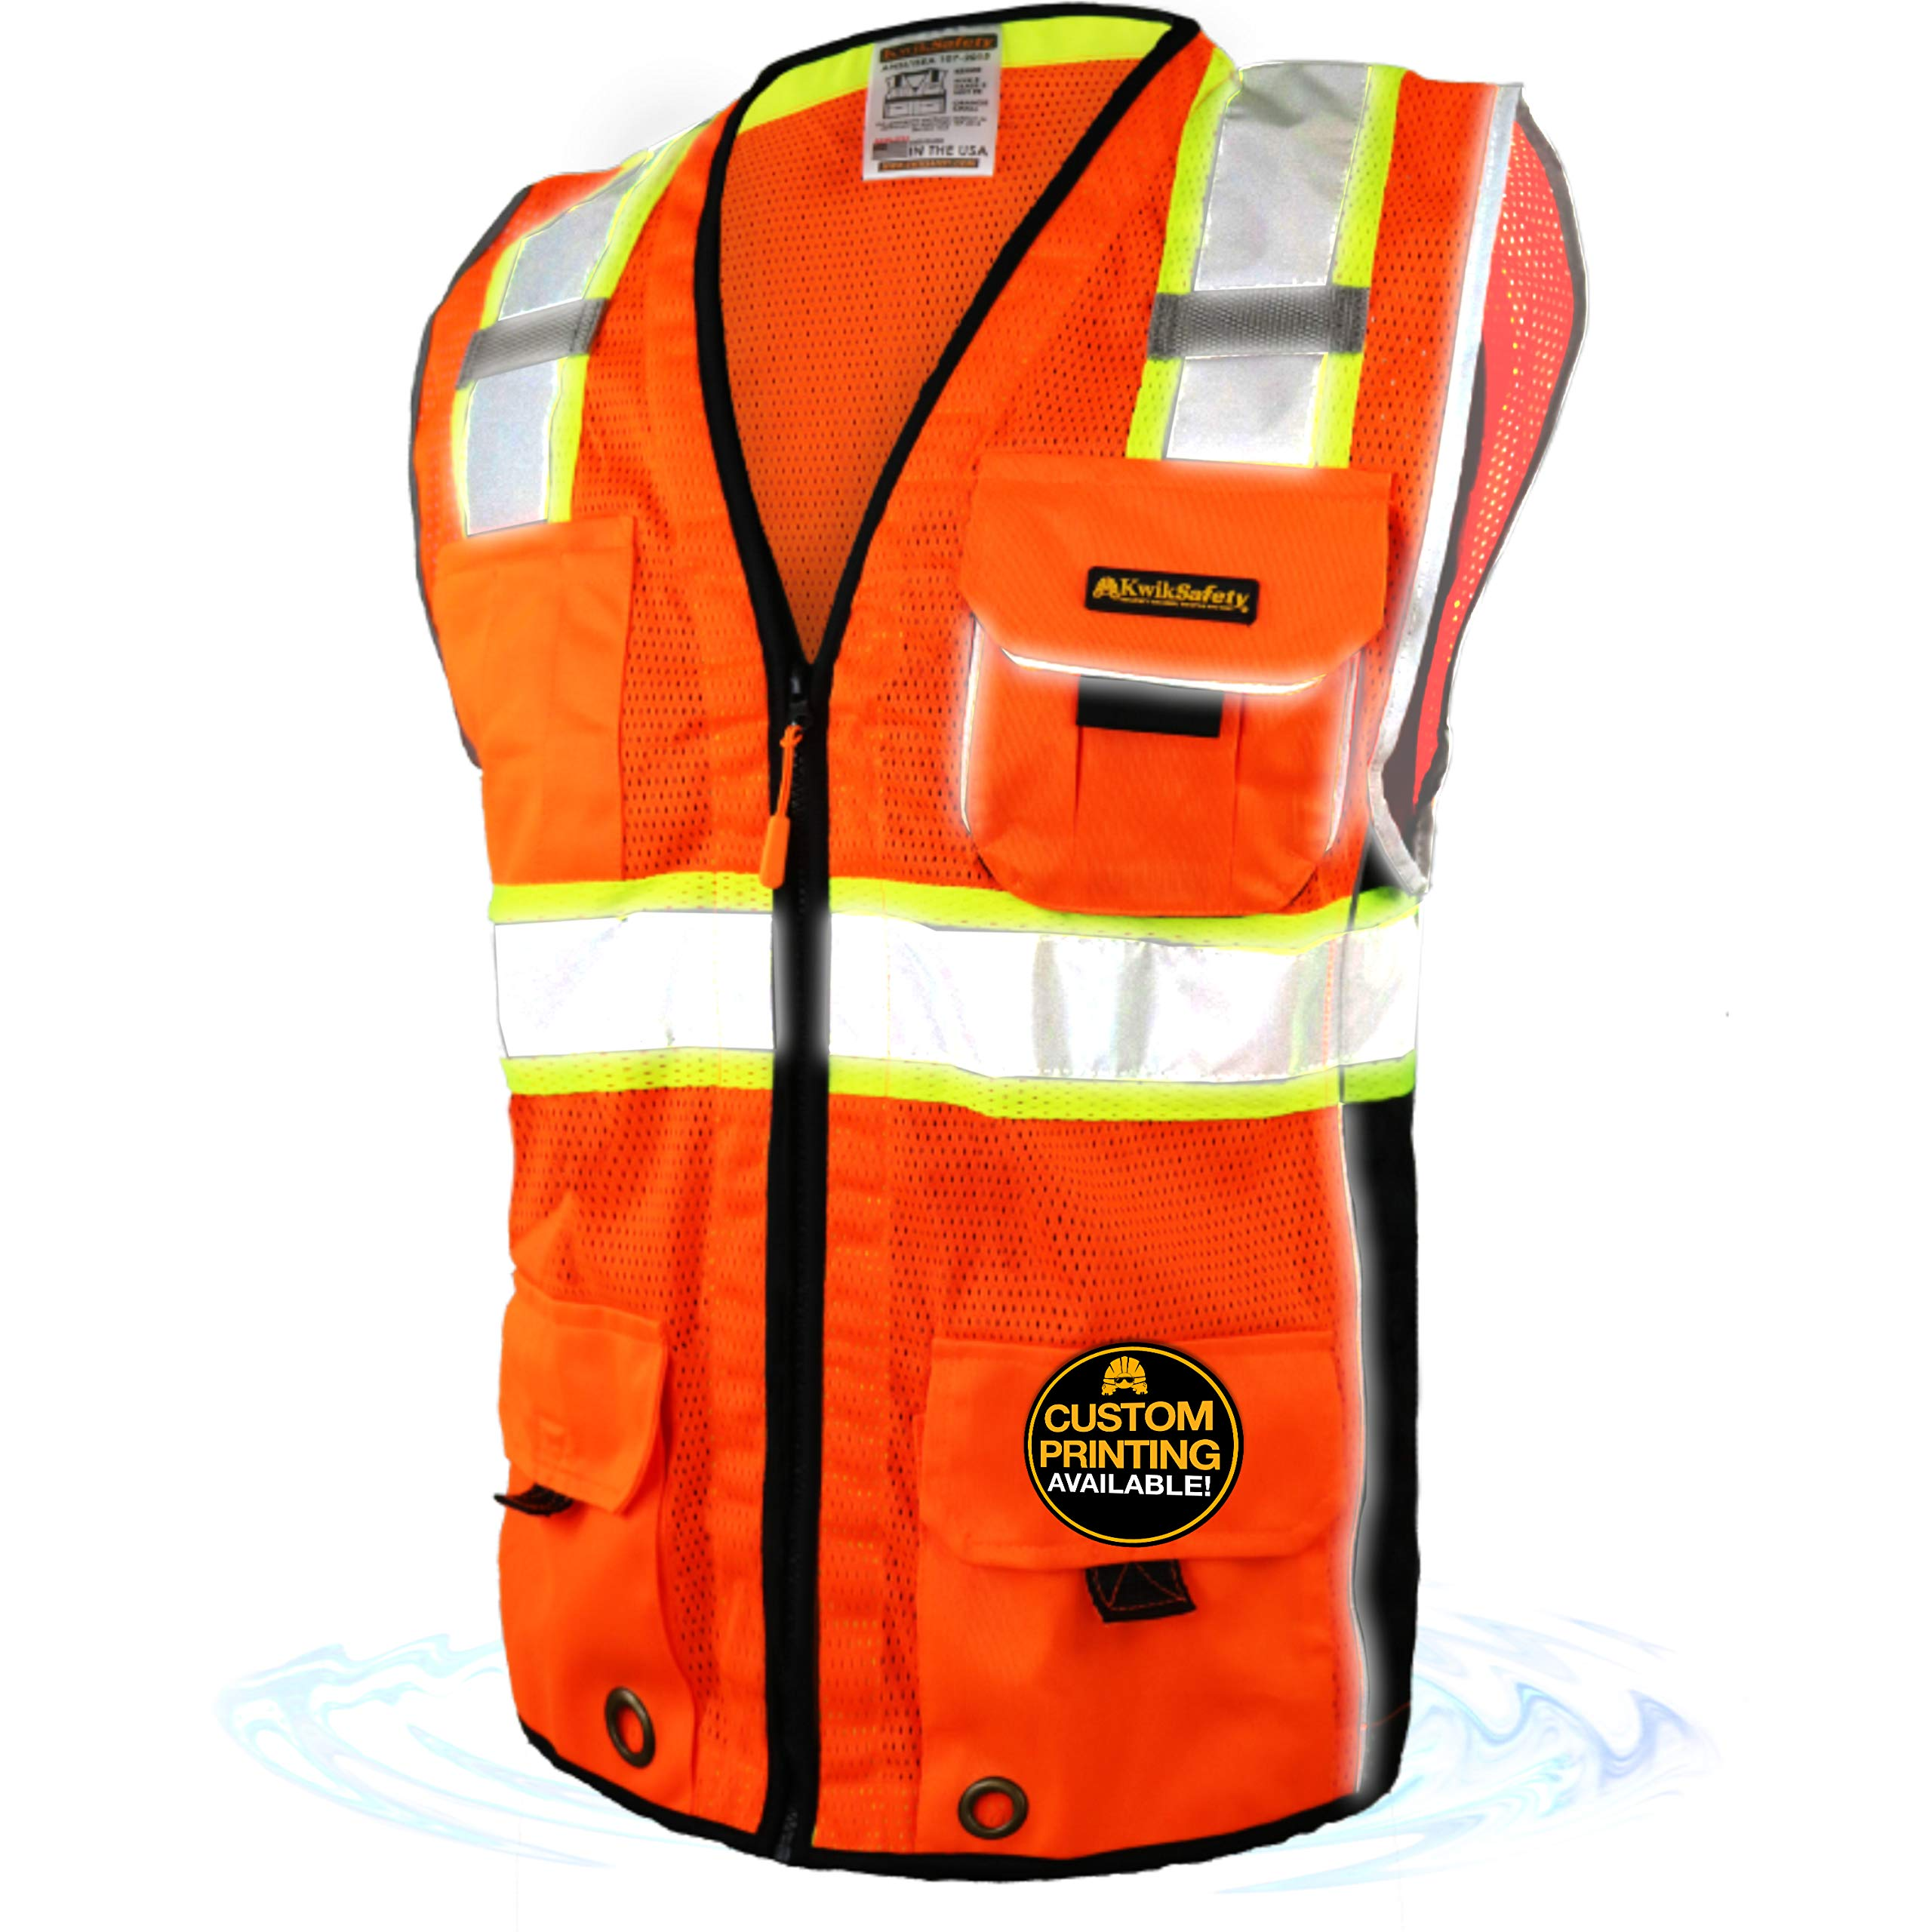 KwikSafety (Charlotte, NC) CLASSIC (10 Pockets) Class 2 ANSI High Visibility Reflective Safety Vest Heavy Duty Mesh with Zipper and HiVis for OSHA Construction Work HiViz Men Orange Black Large by KwikSafety